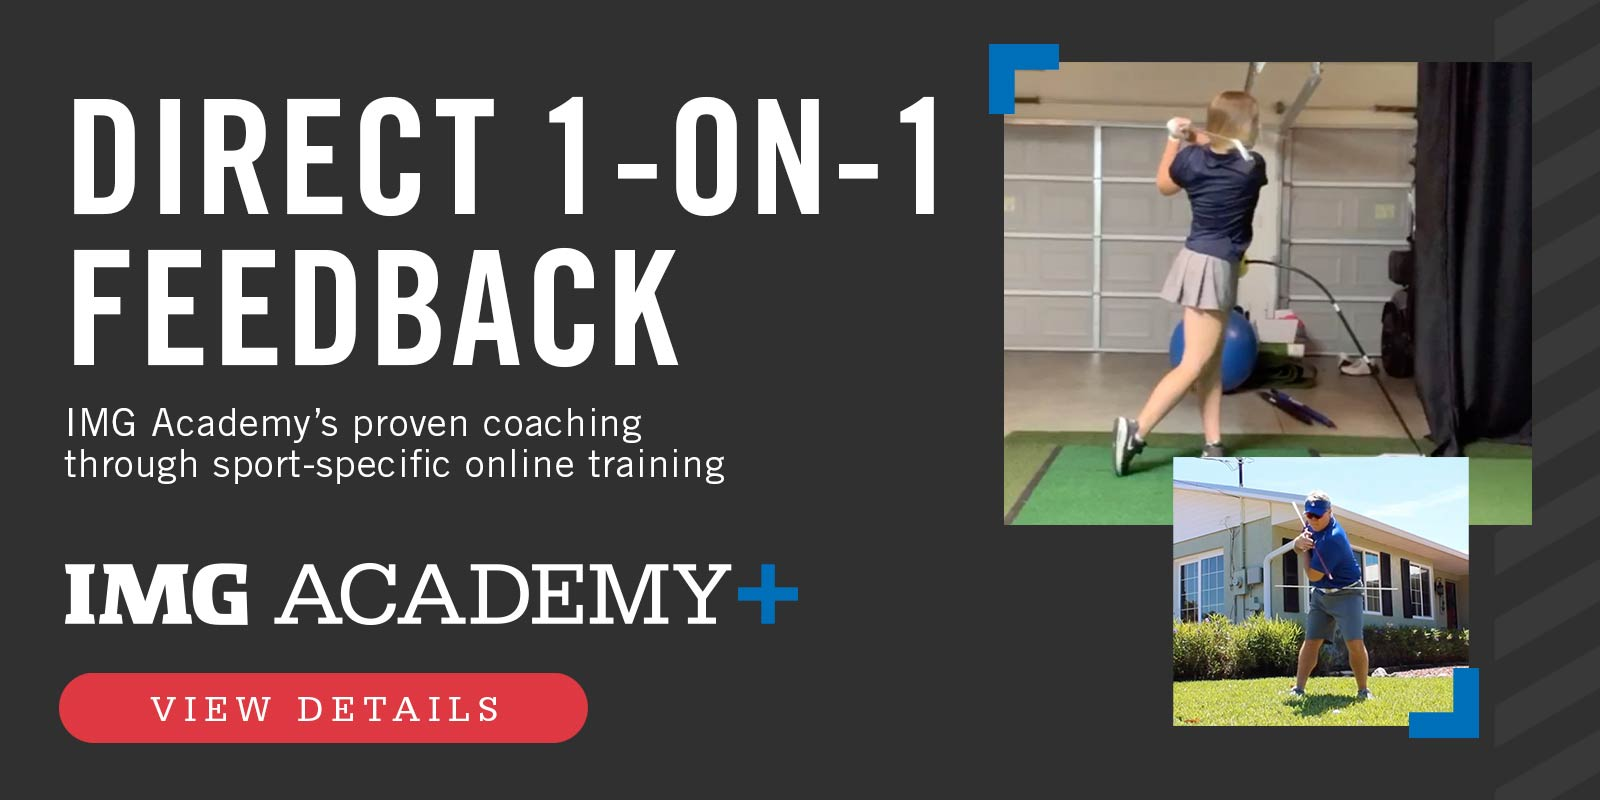 IMG Academy+. Direct 1-on-1 Feedback. IMG Academy's proven coaching through sport-specific online training. Limited Spots Available! View Details